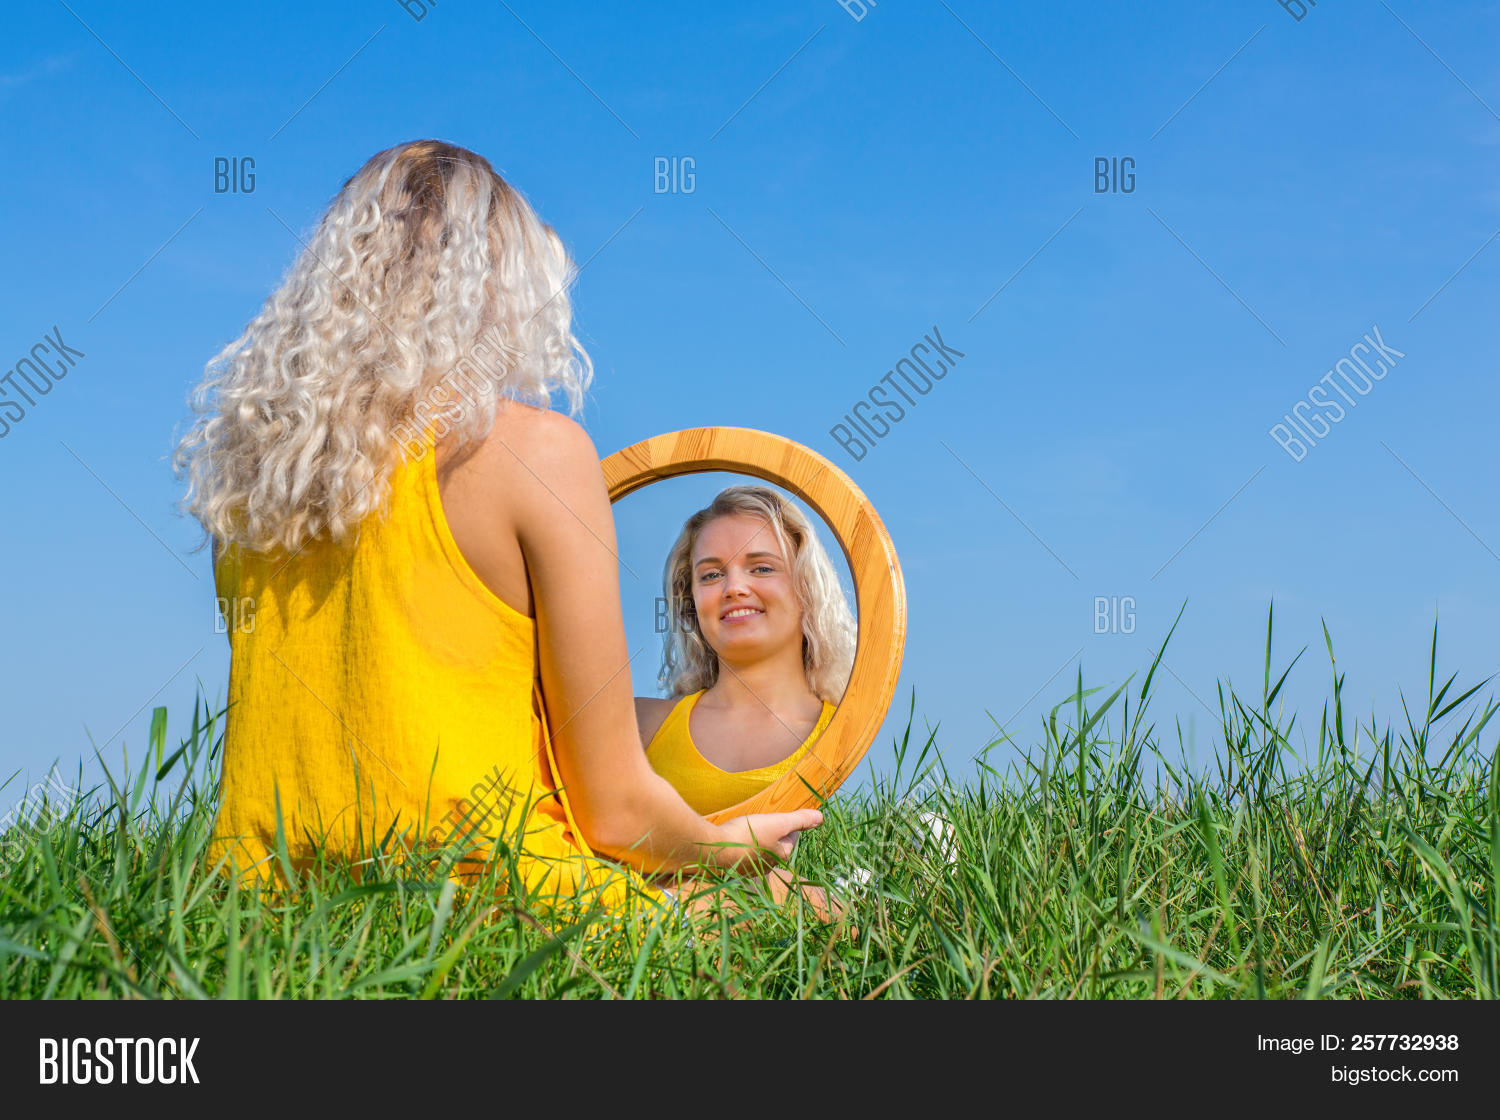 Blond woman sits looking at her mirror image outside